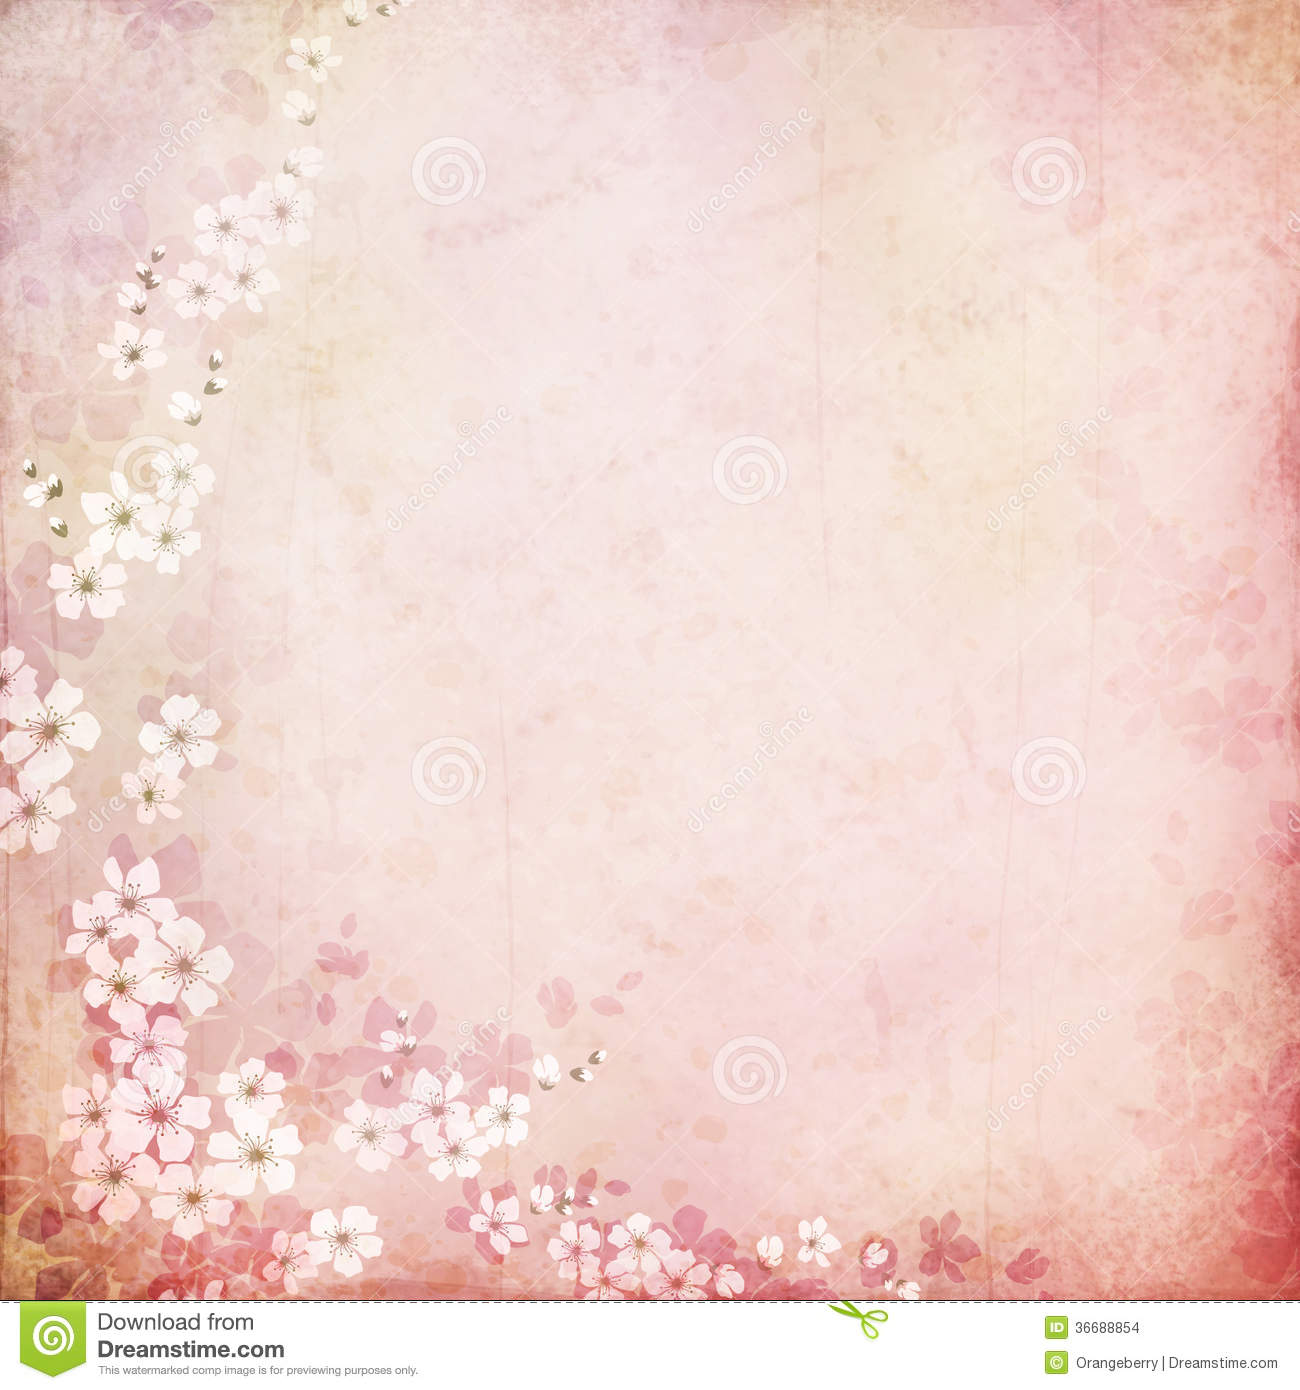 Vintage Background With Cherry Blossoms Stock Images